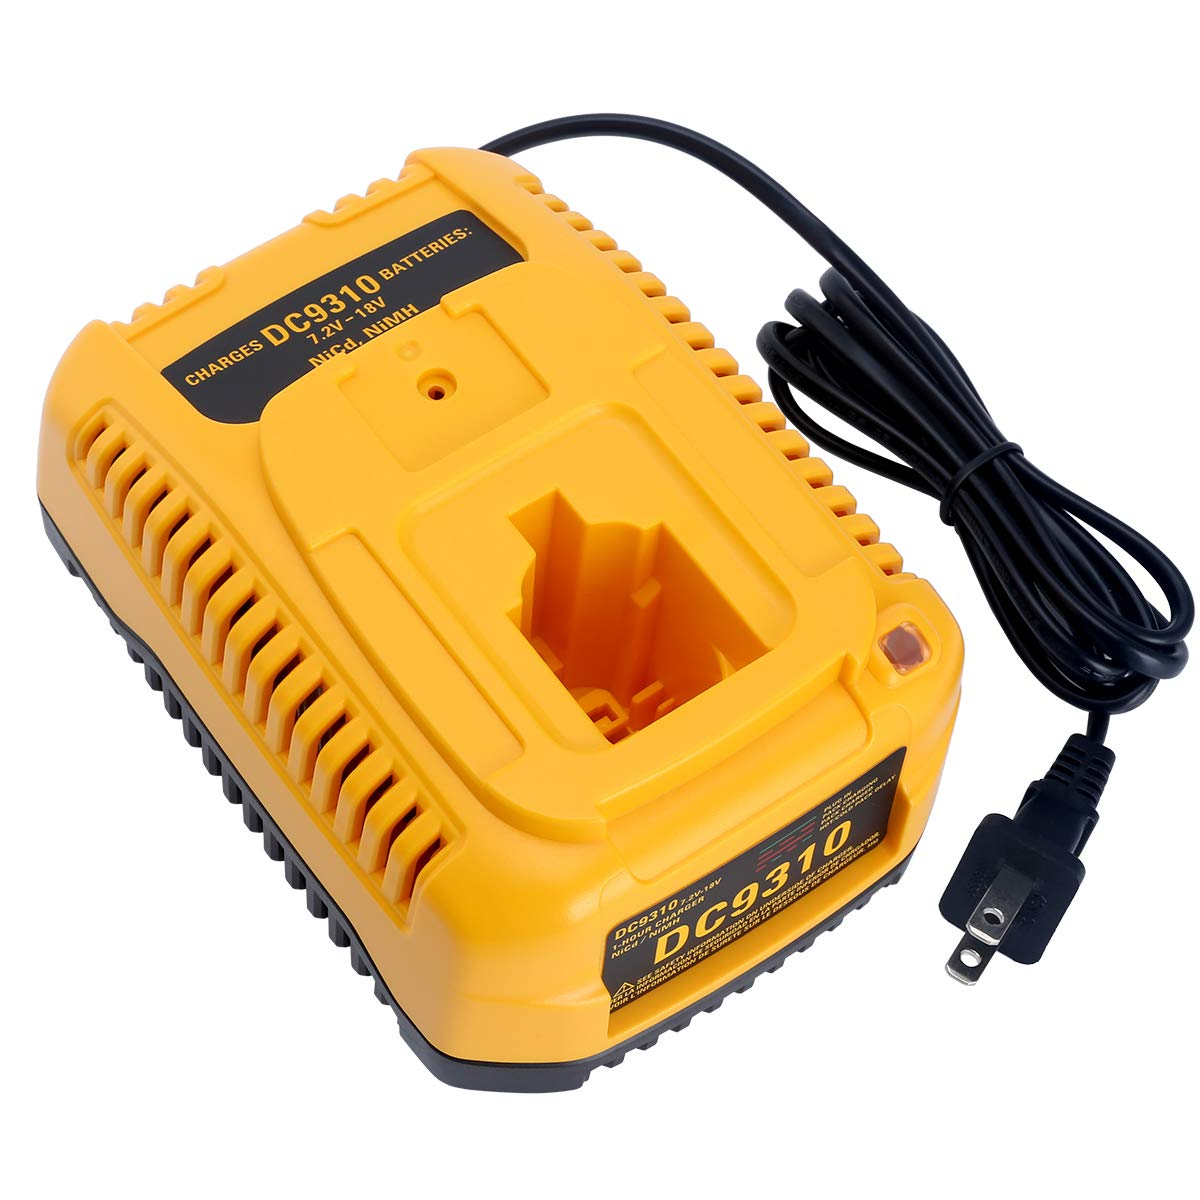 Biswaye Battery Charger DC9310 for DEWALT 7.2V-18V NiCad & NiMh Battery DW9057 DC9071 DC9091 DC9096 DW9072 DW9091 DC9099 DW9099